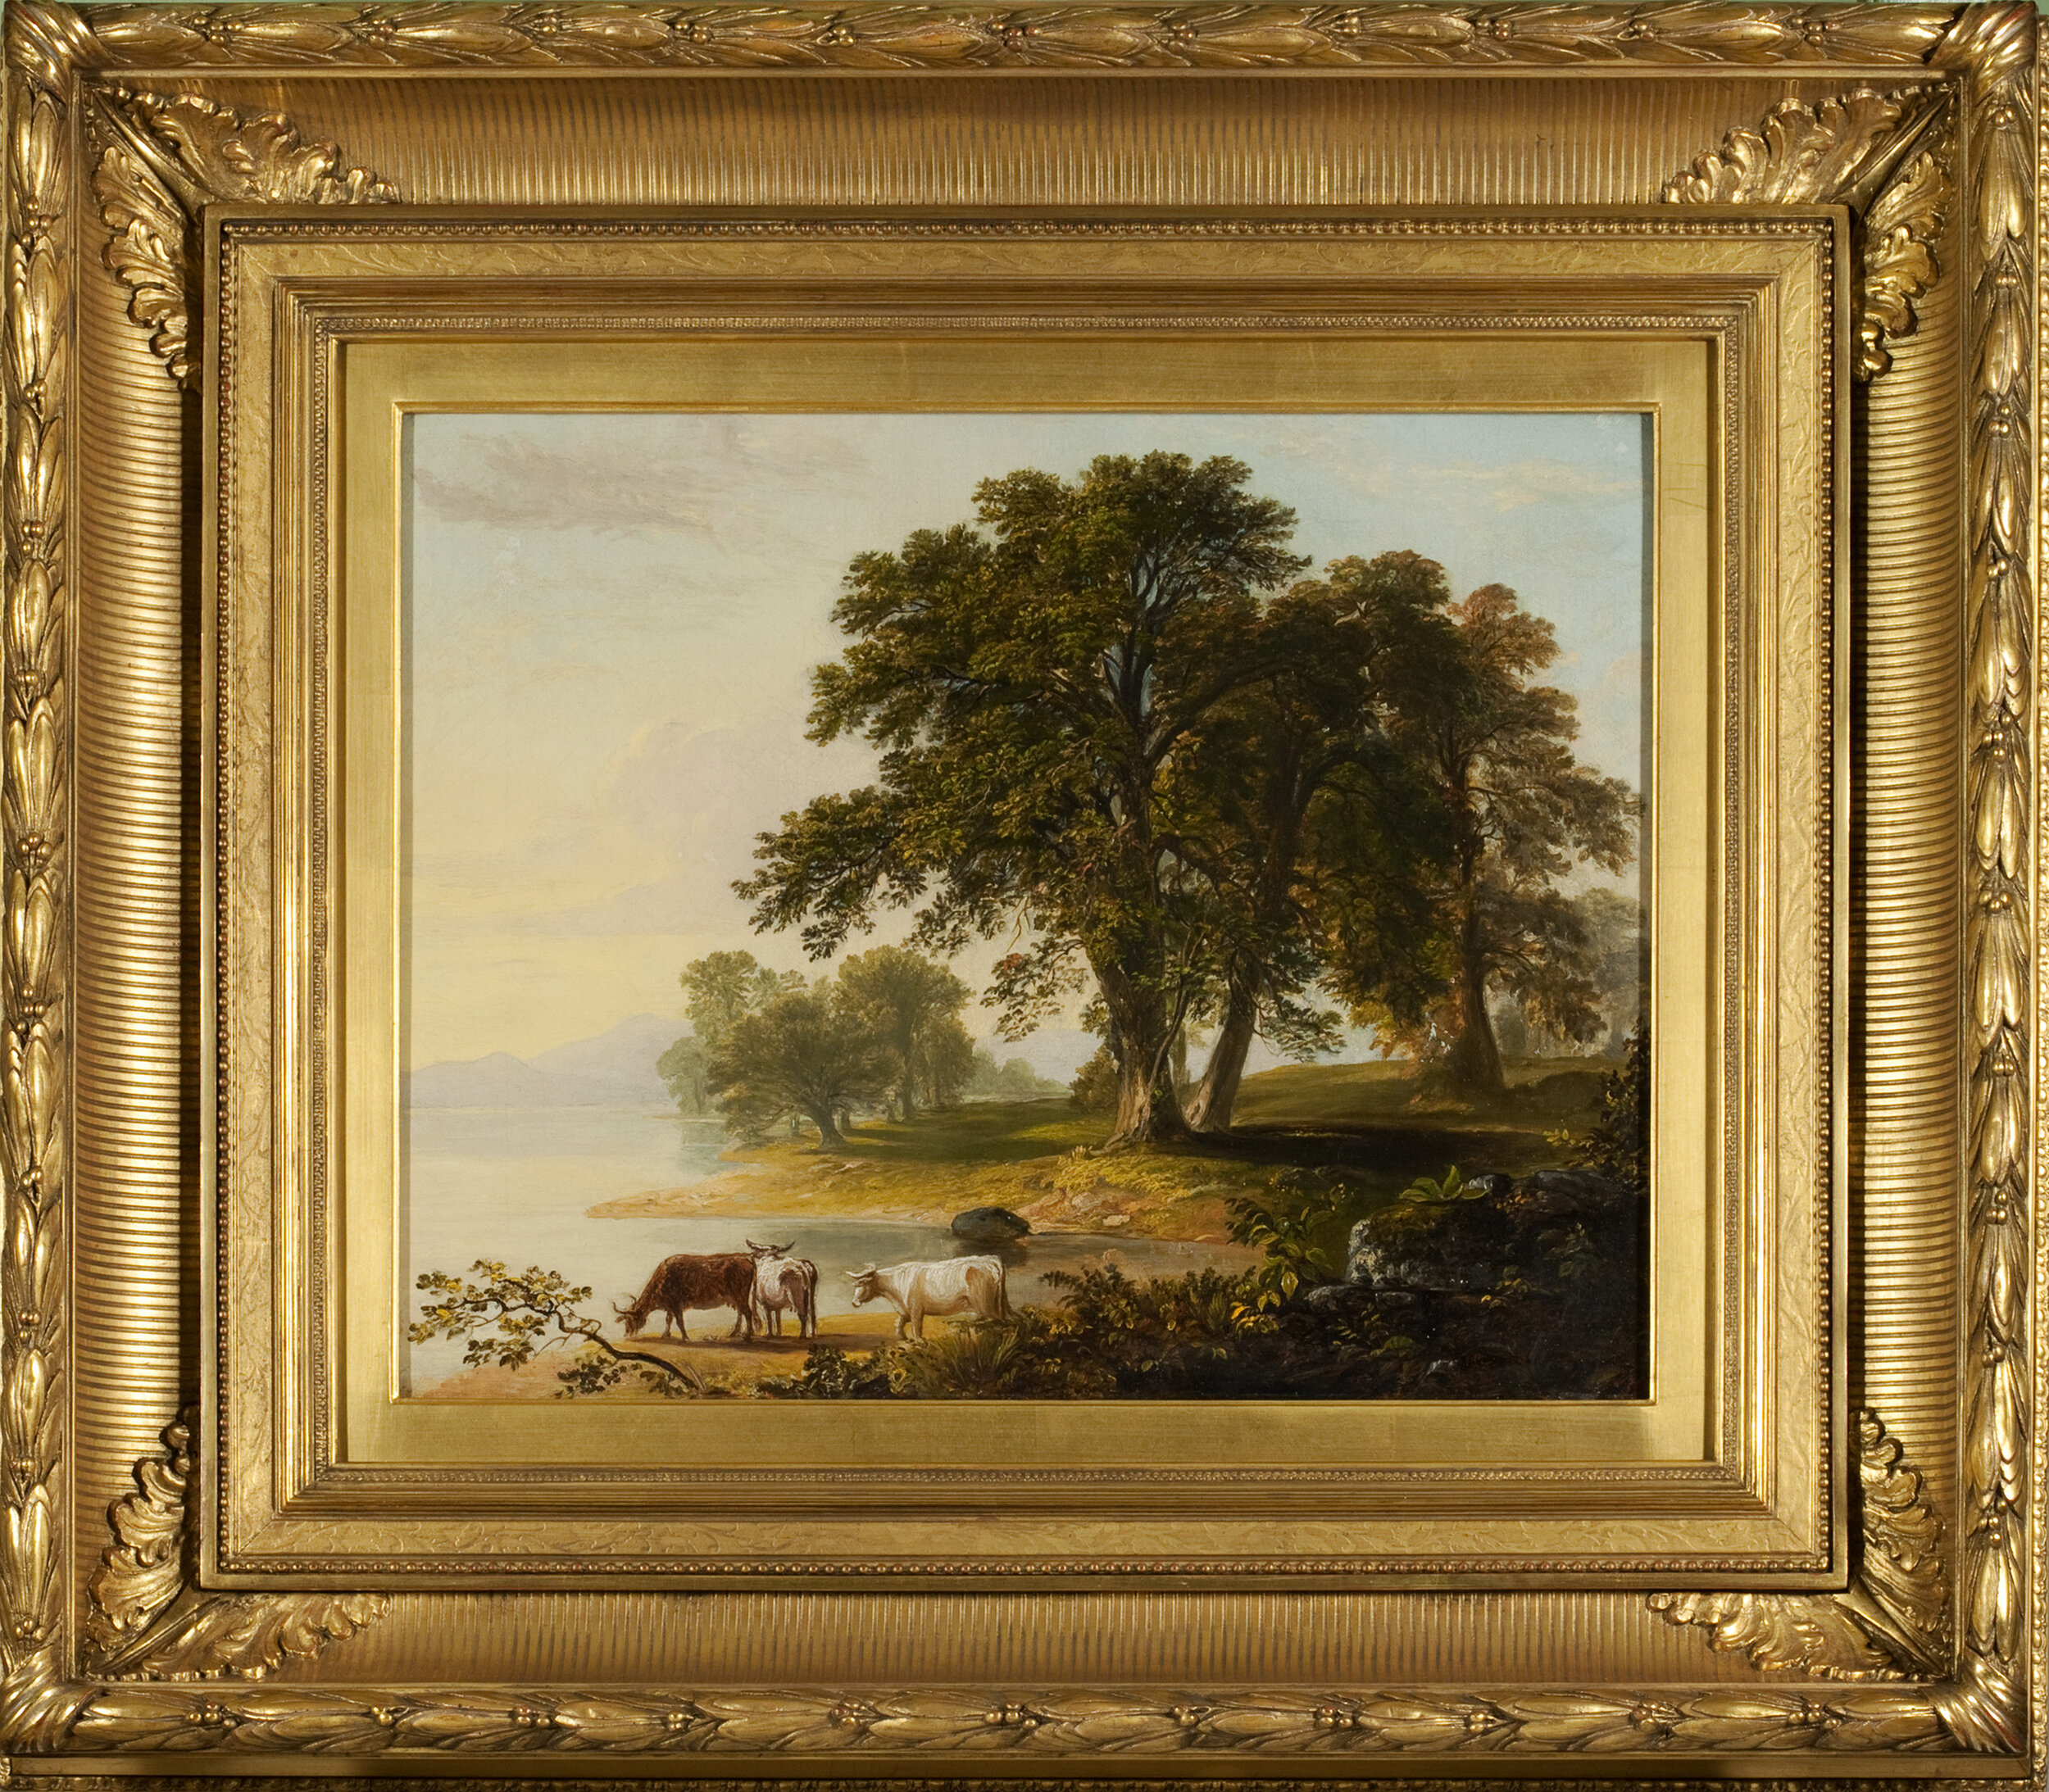 © Asher B. Durand (1796–1886) Pastoral Scene at Lake's Edge, circa 1865 Oil on canvas 17 1/8 x 21 1/8 inches